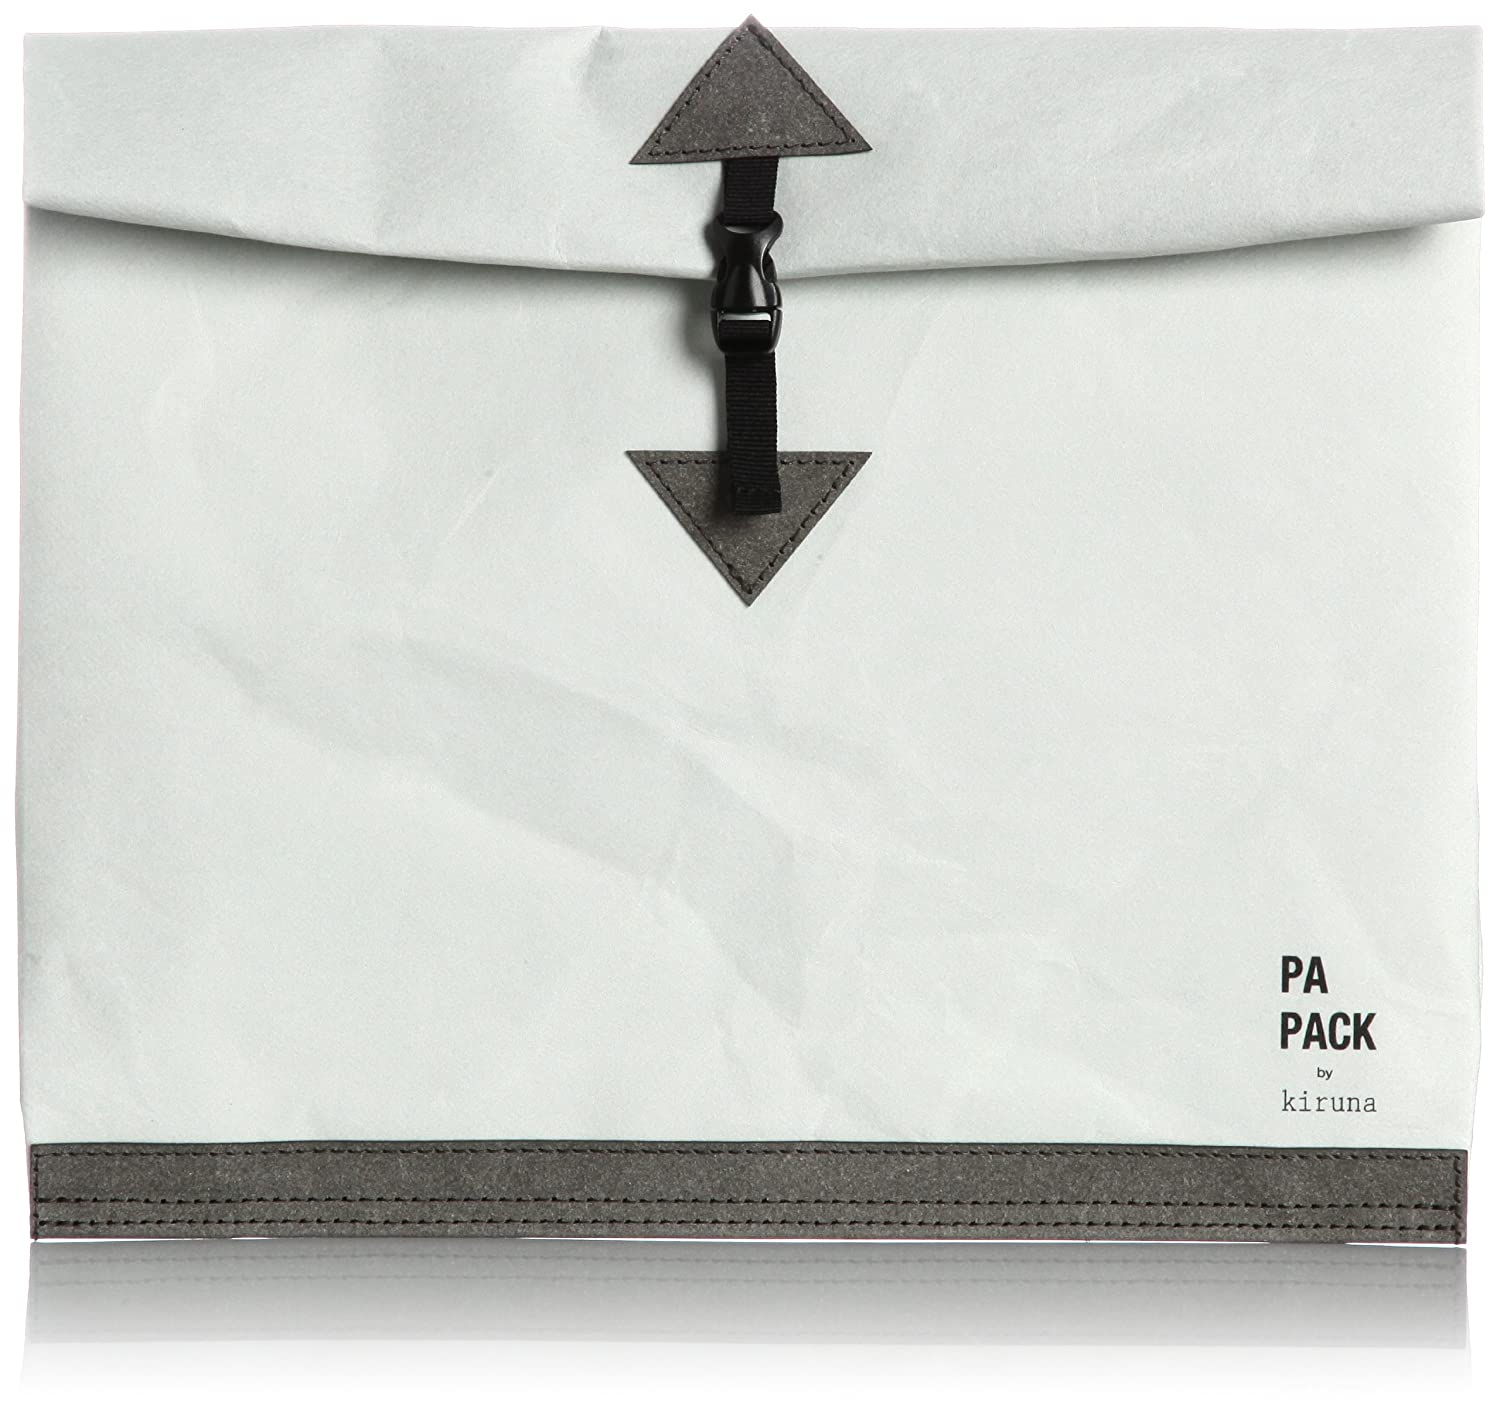 Amazon.co.jp: [ペーパックバイキルナ] PA-PACK by kiruna PA-PACK CLUTCH M 141-P0004M 灰 (灰): シューズ&バッグ:通販